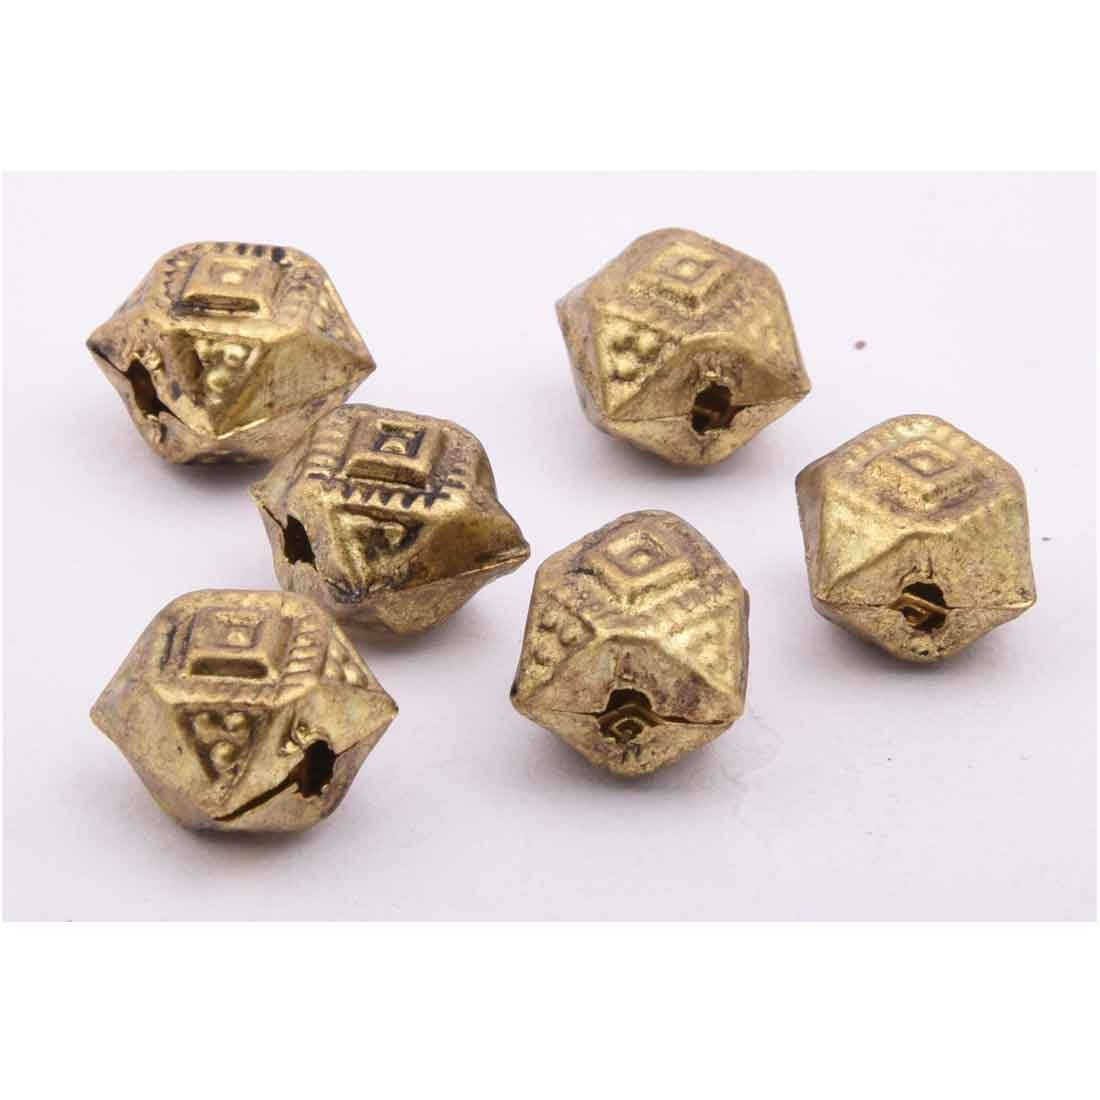 Beads India 1700041  Handcrafted Metal Beads/Discounts Above 500 pcs